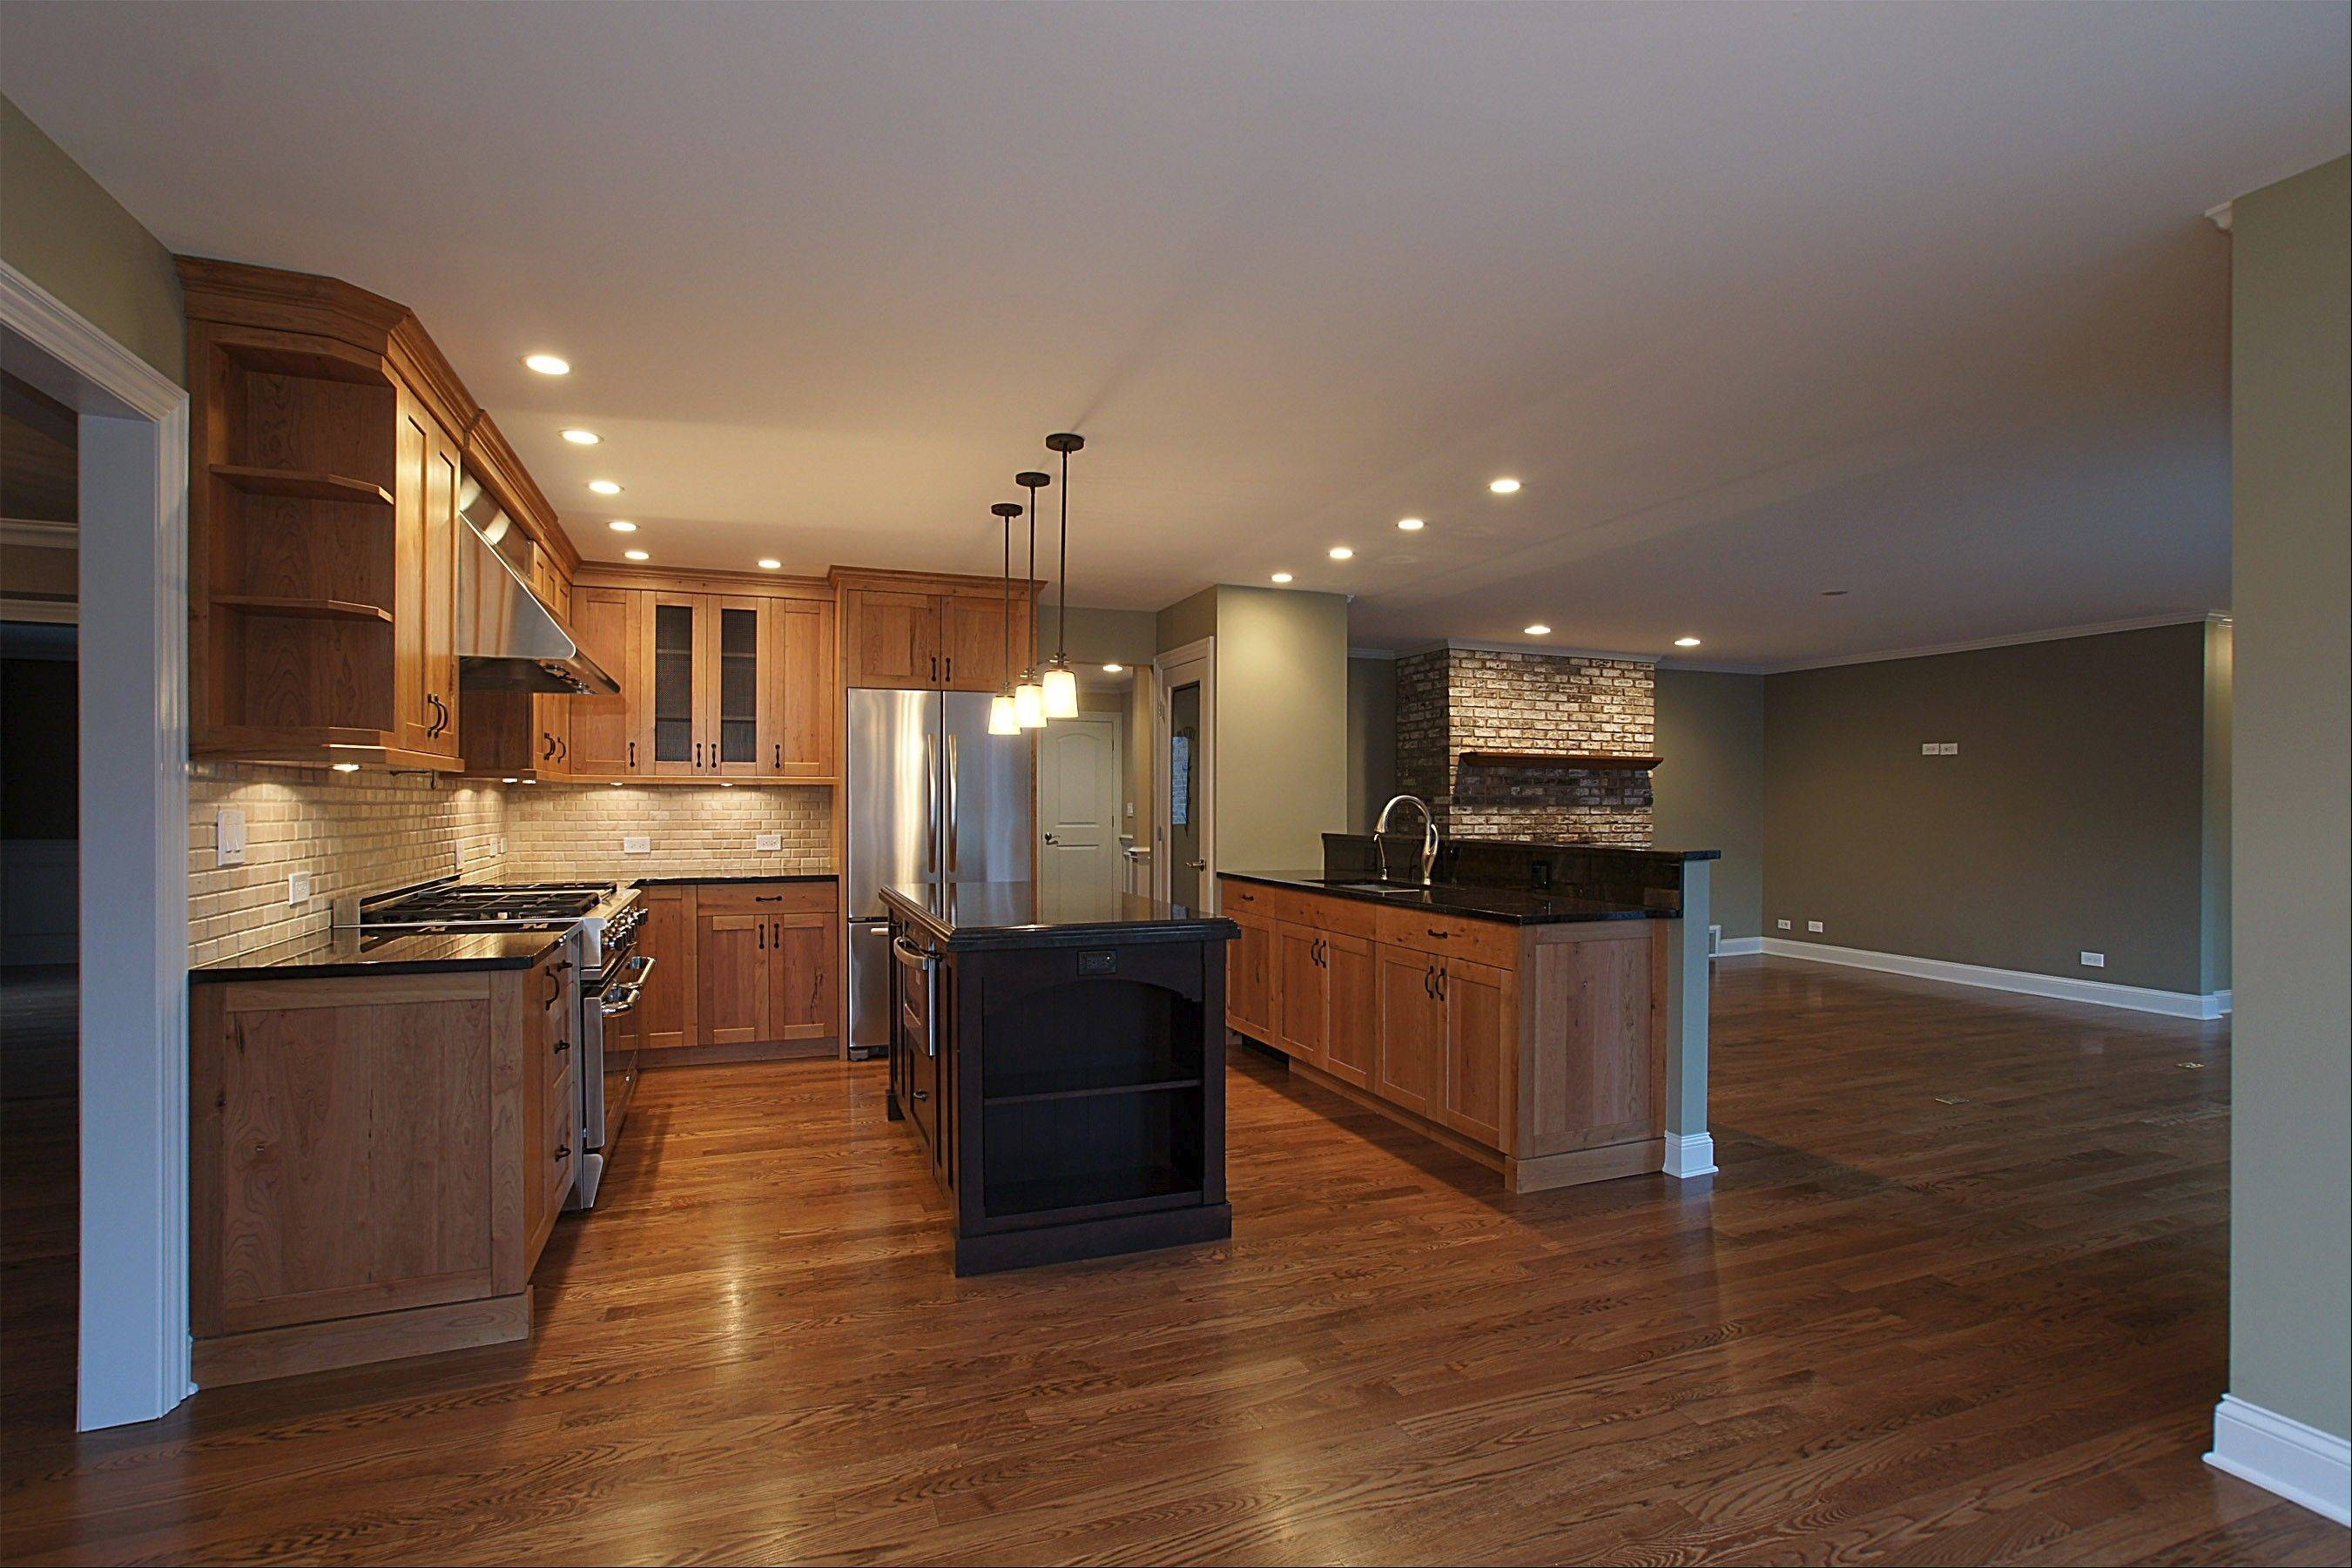 The home's kitchen and hardwood floors have been updated.